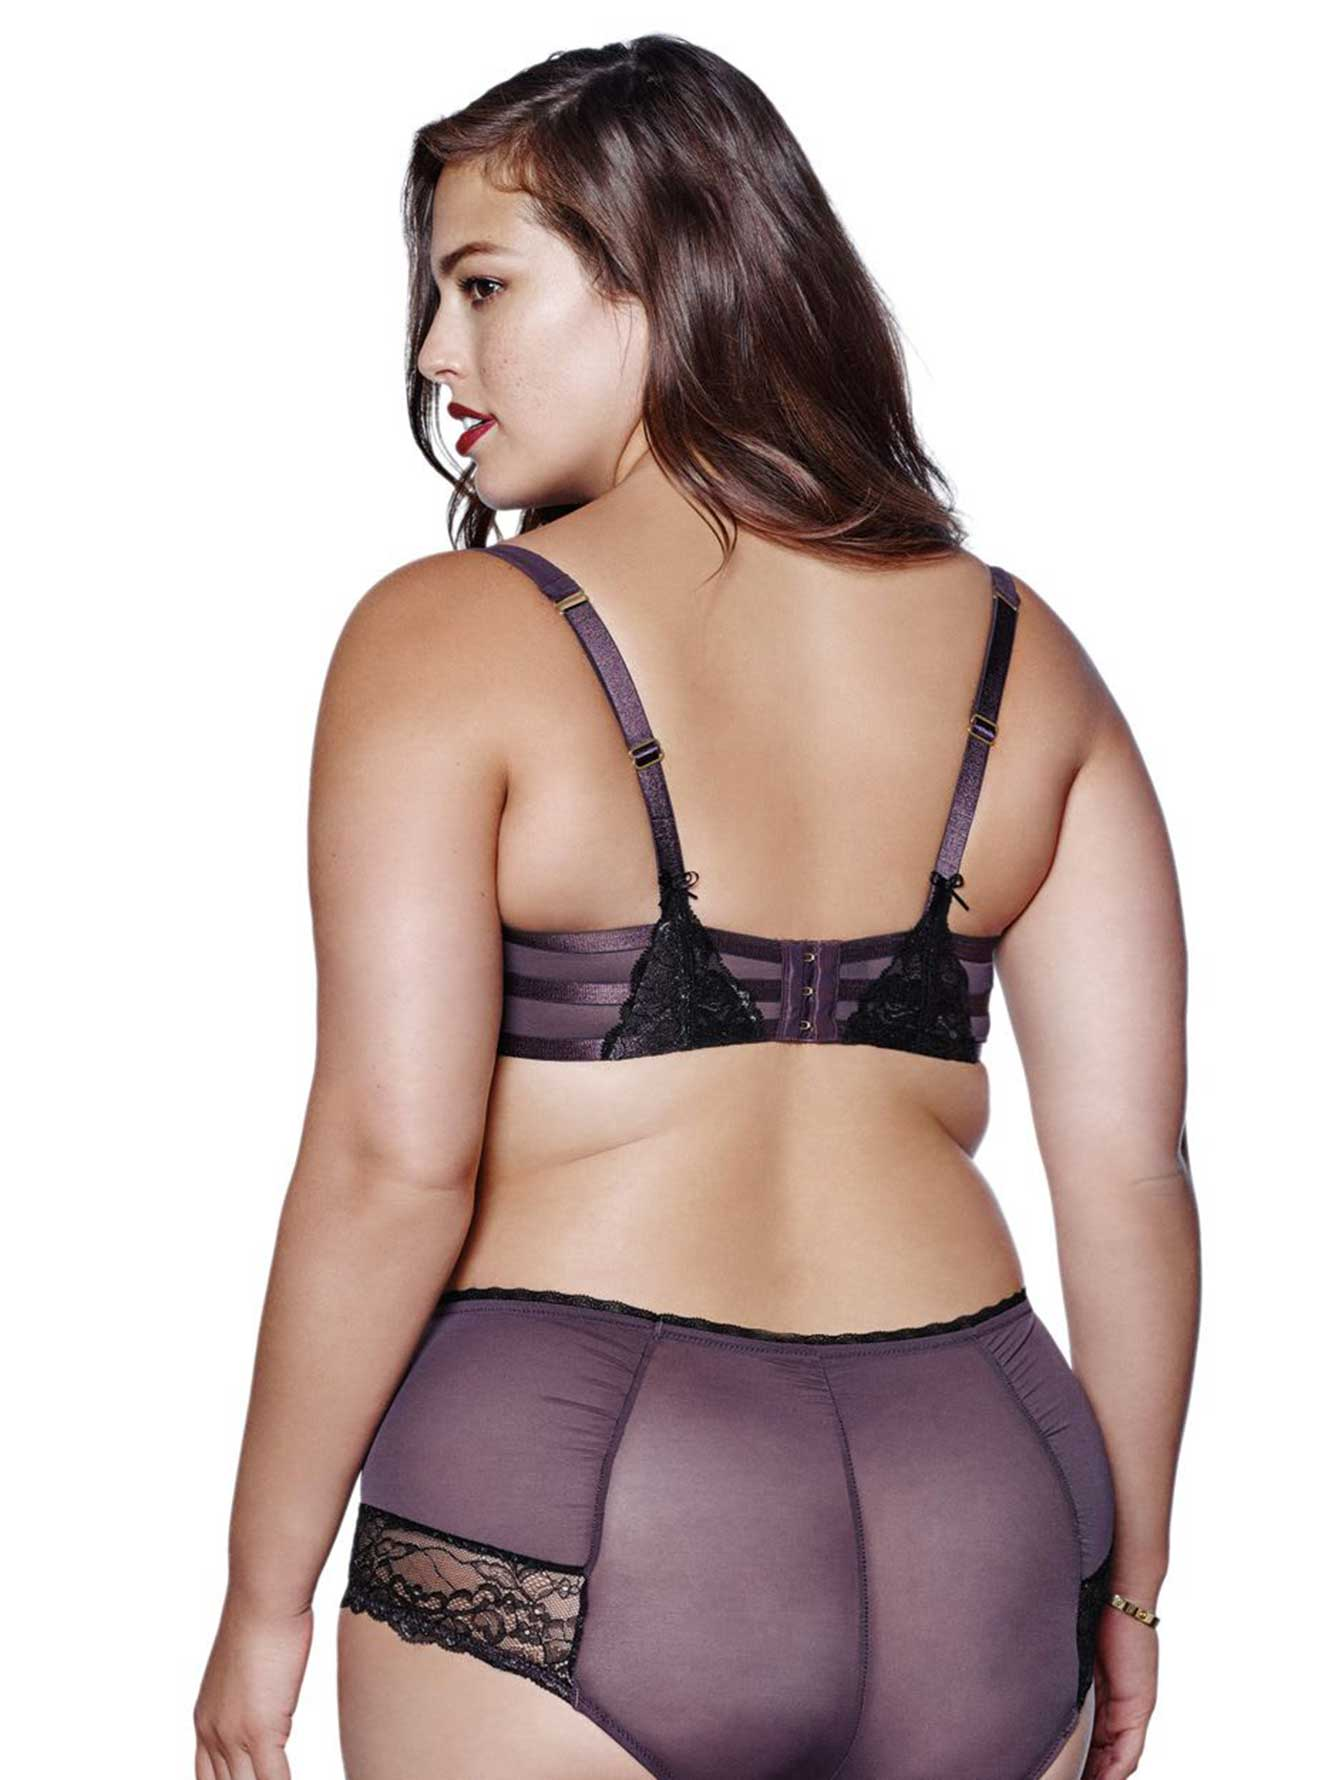 Lane Bryant leads the plus-size fashion field in style and price with Lane Bryant promo codes and discounts. Women searching for trendy and stylish clothing in sizes 14 and up choose to shop at one of Lane Bryant's U.S. retail stores, or online at healthpot.ml